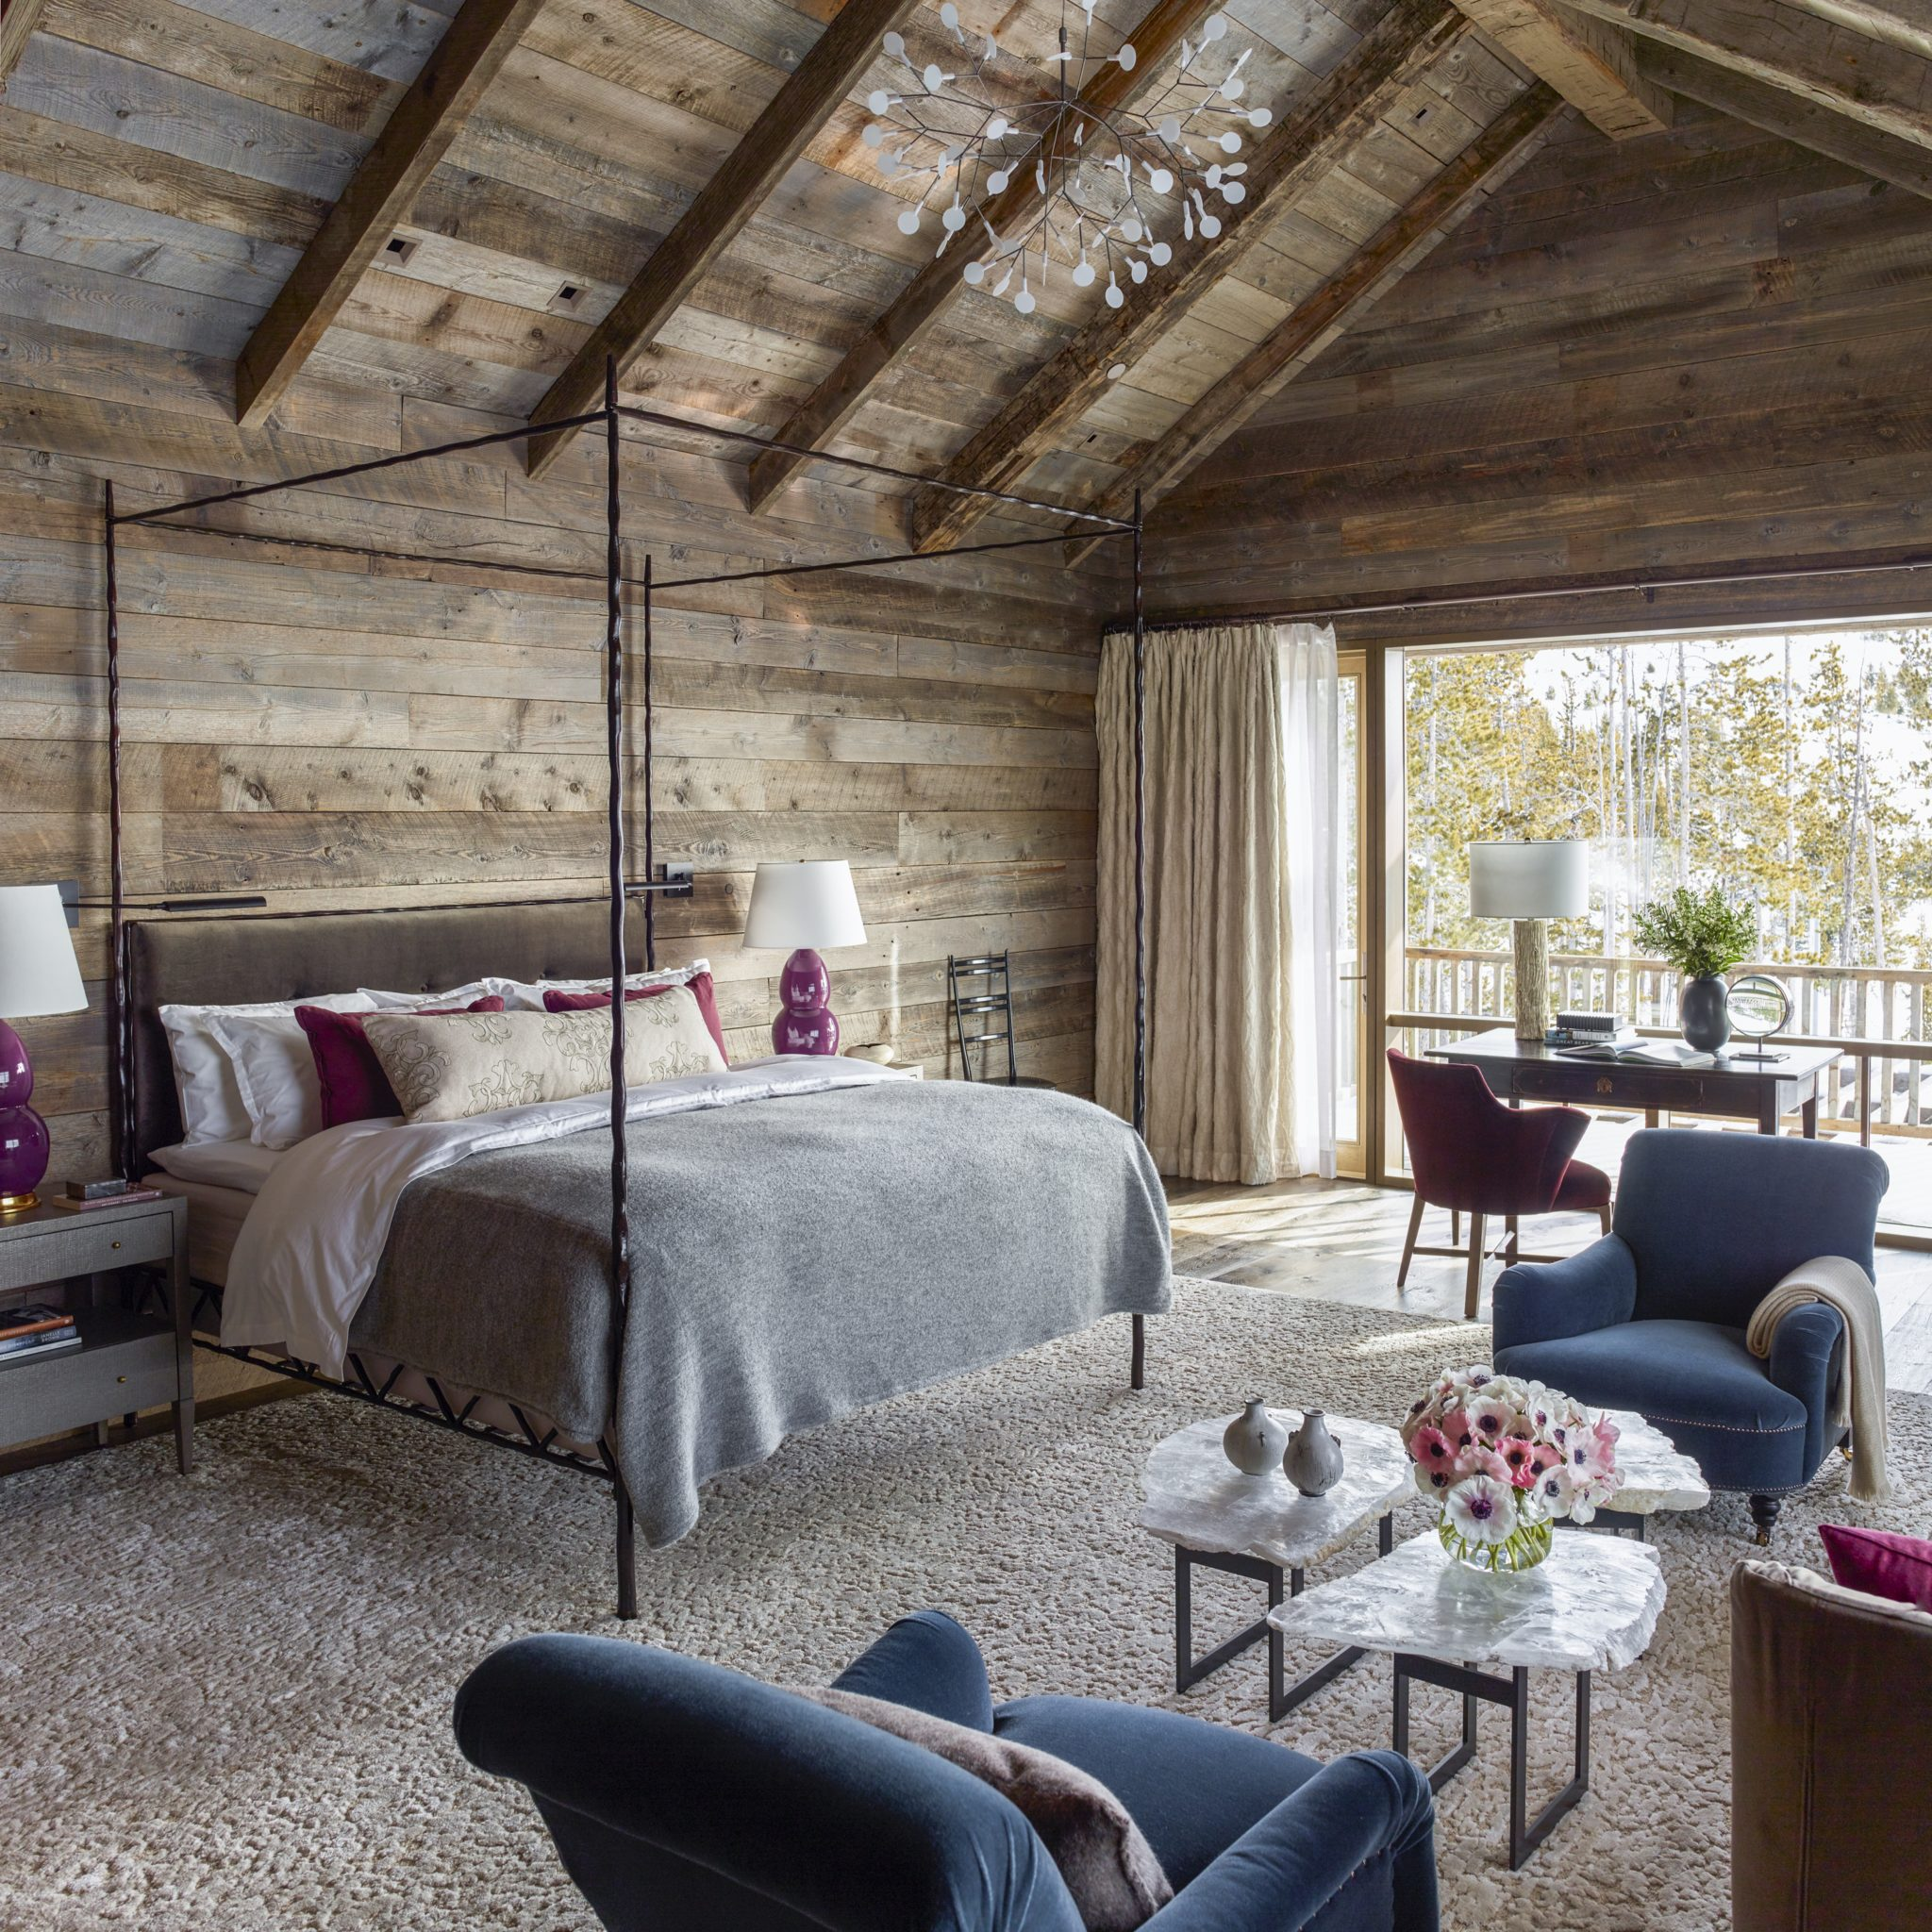 Ski Chalet Interior Design relaxing bedrooms with wood paneling - chairish blog